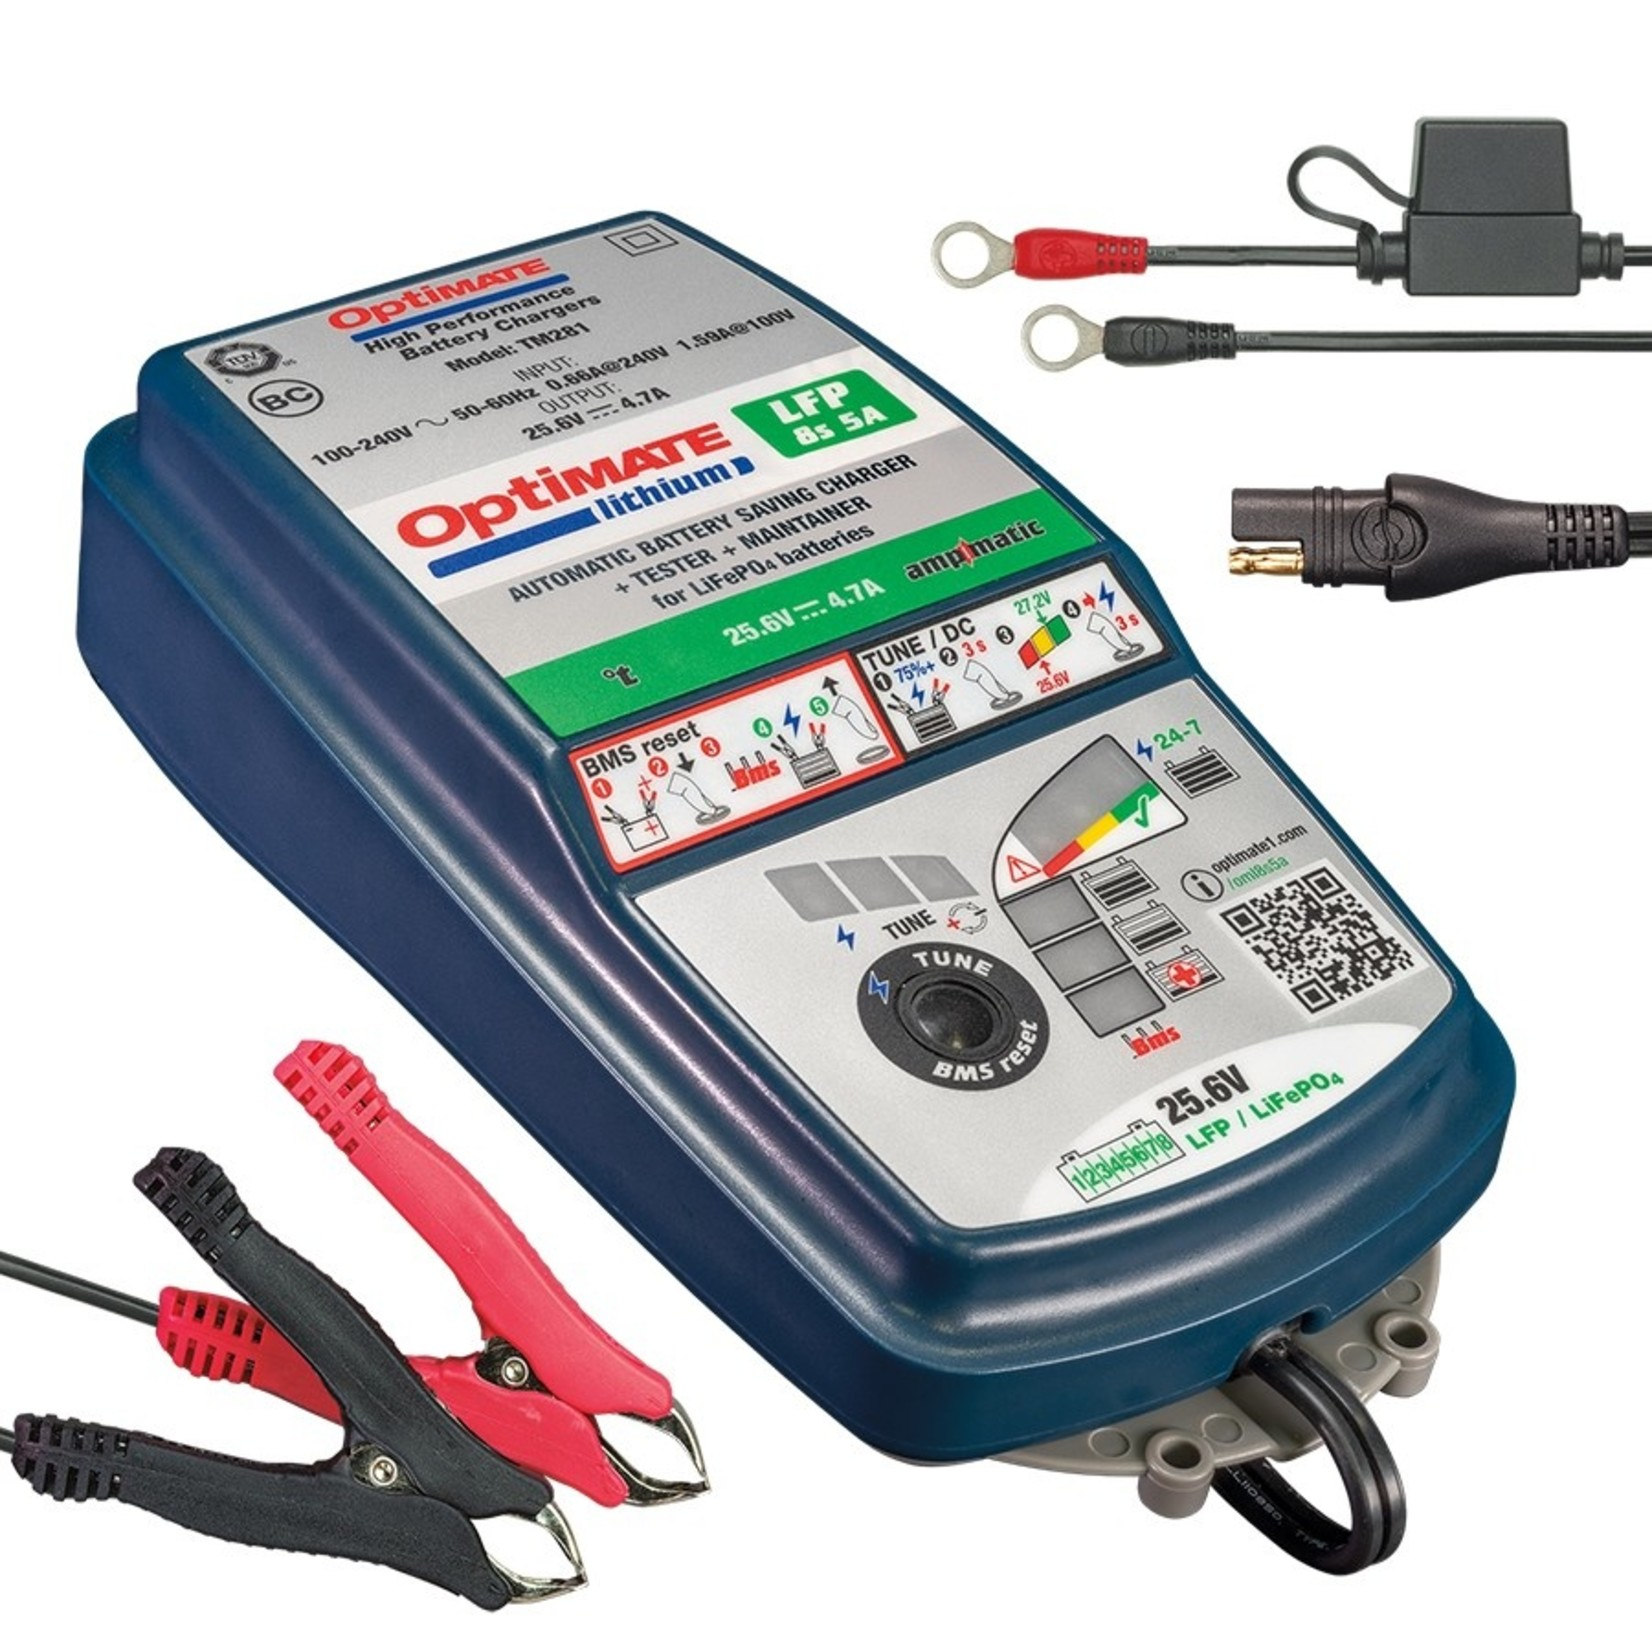 OptiMate OptiMate Lithium 8s 5A - Acculader